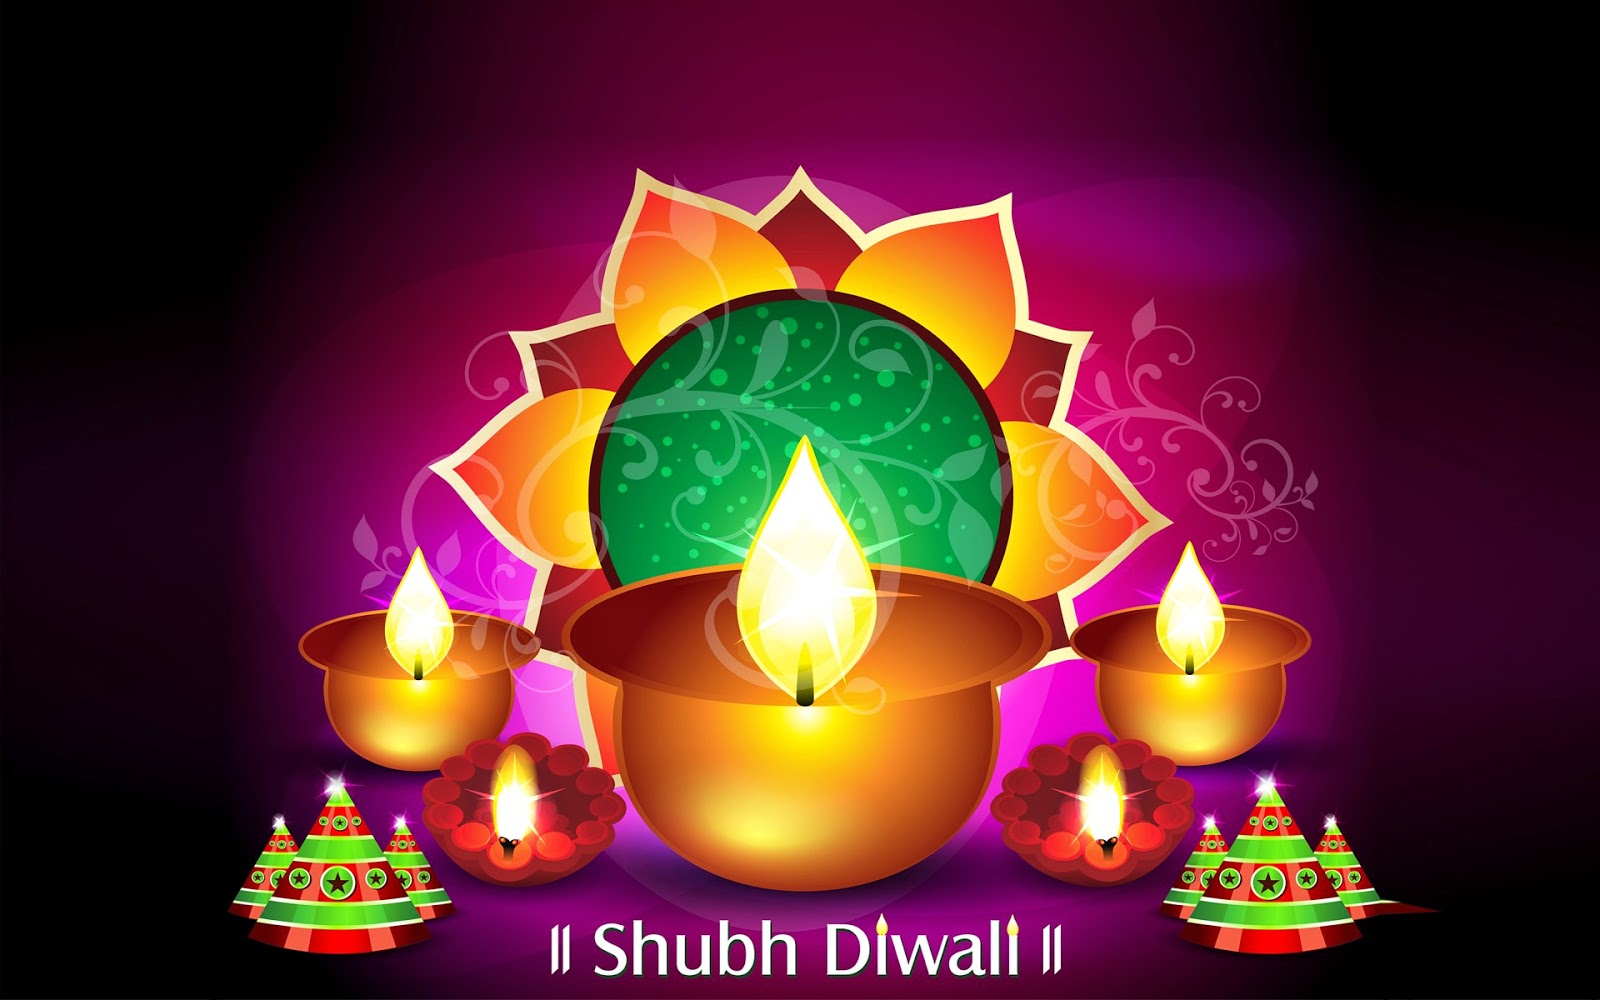 Happy Diwali High Quality Wallpaper: Happy Diwali 2014 Greeting And Wishes HD Wallpapers Free